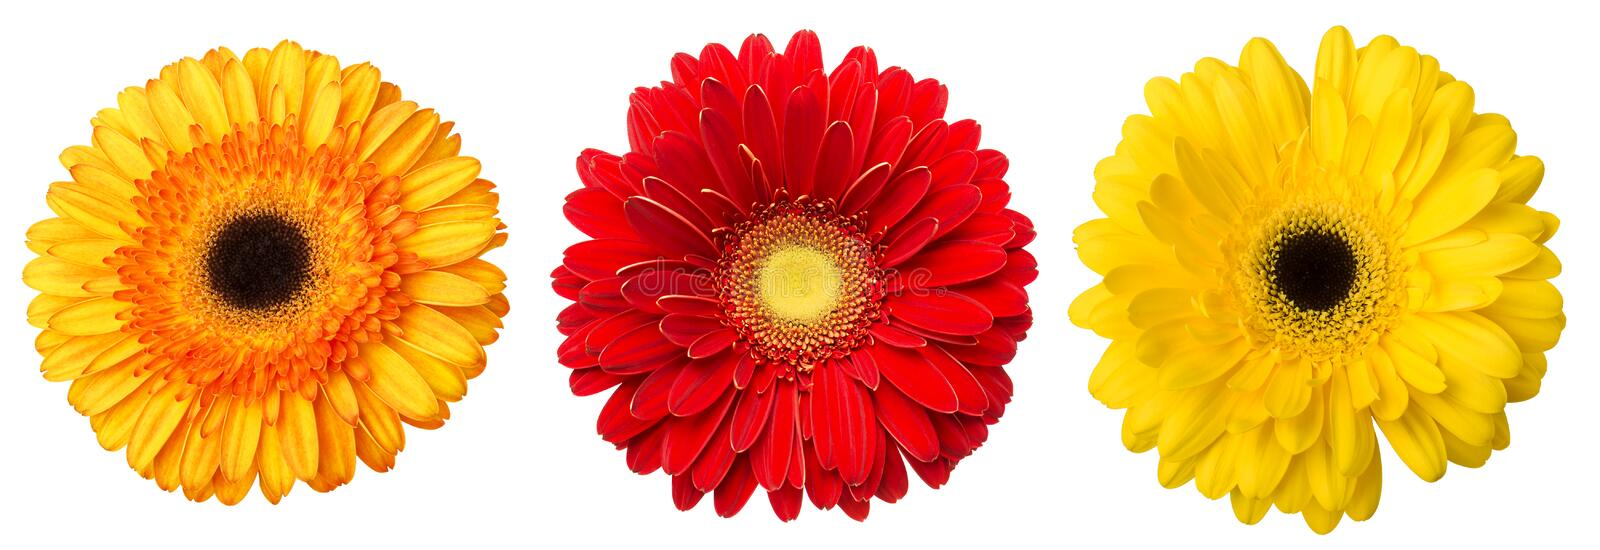 Grande sélection du jamesonii coloré de Gerbera de fleur de Gerbera d'isolement sur le fond blanc Divers rouge, jaune, orange, ro photo stock